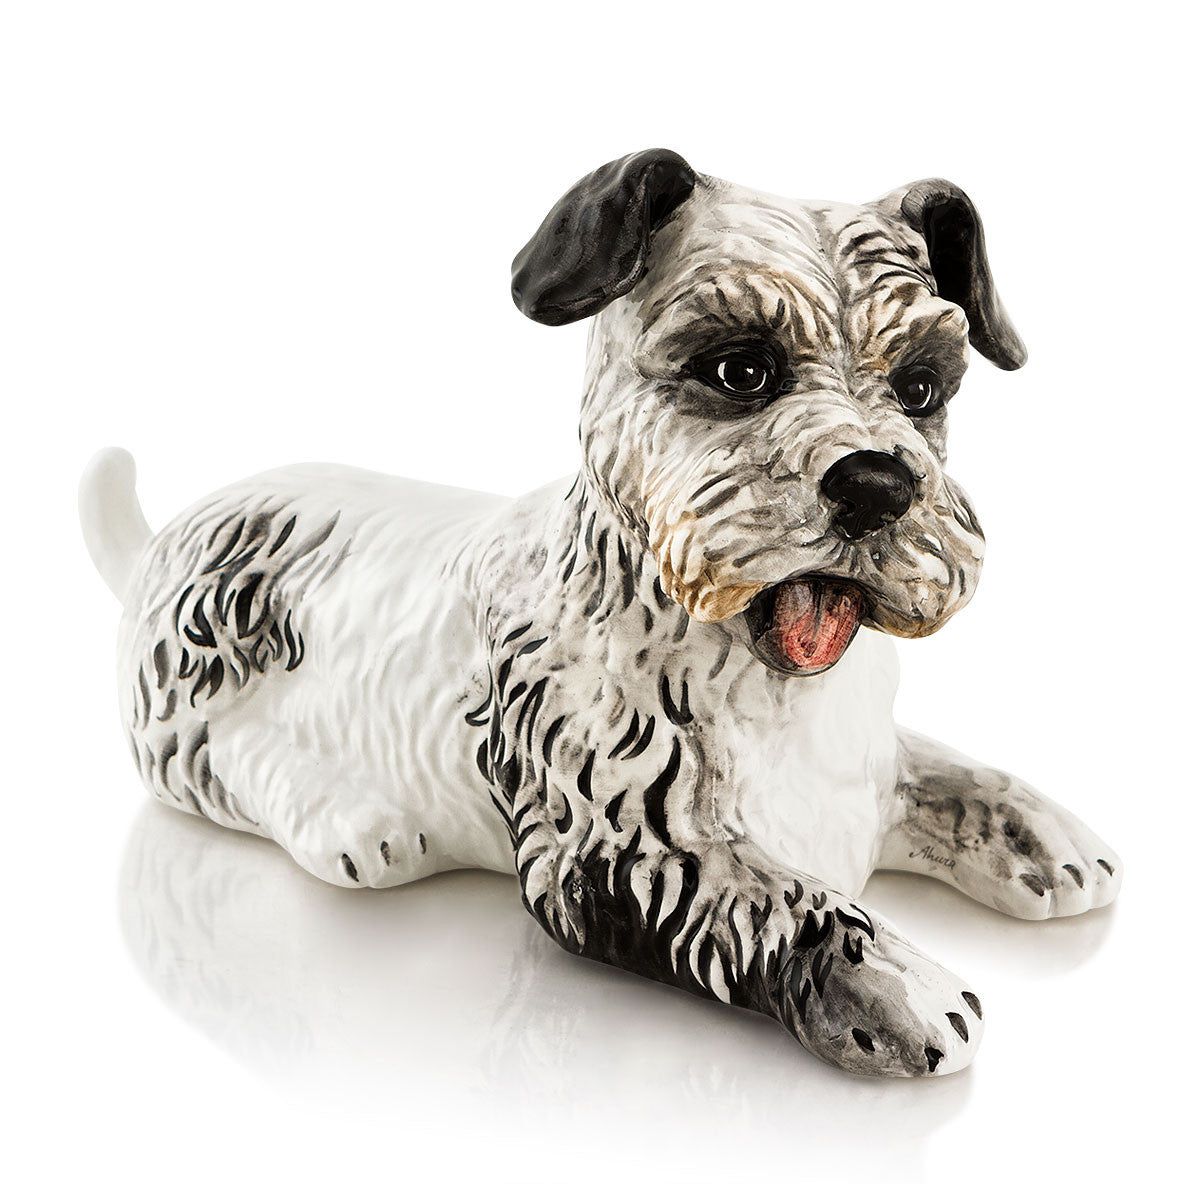 Ceramic scottish terrier statue lying down with lifelike details